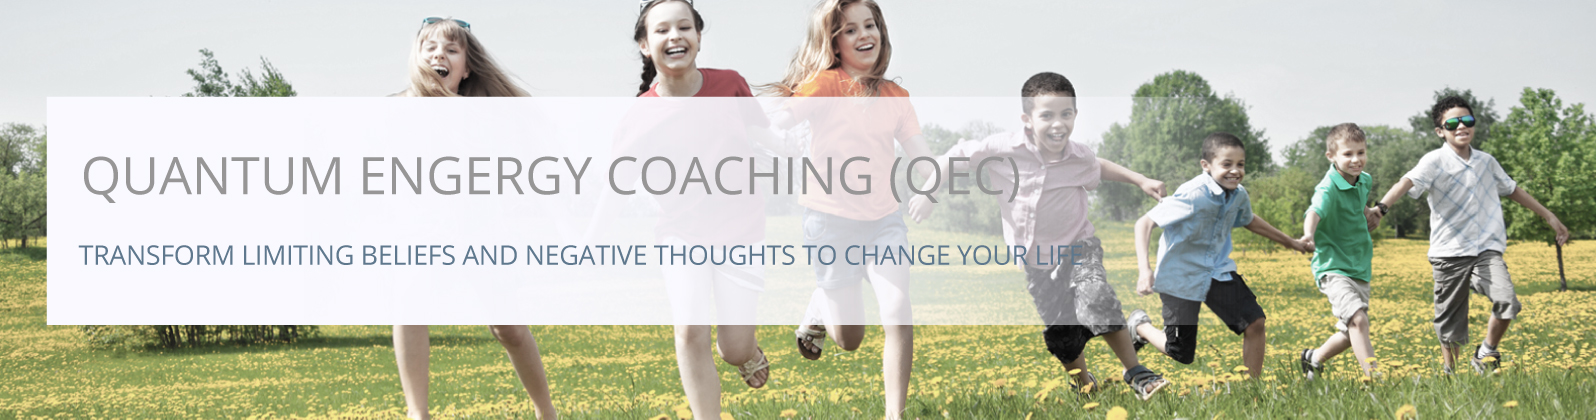 QUANTUM-ENGERGY-COACHING-(QEC)-2